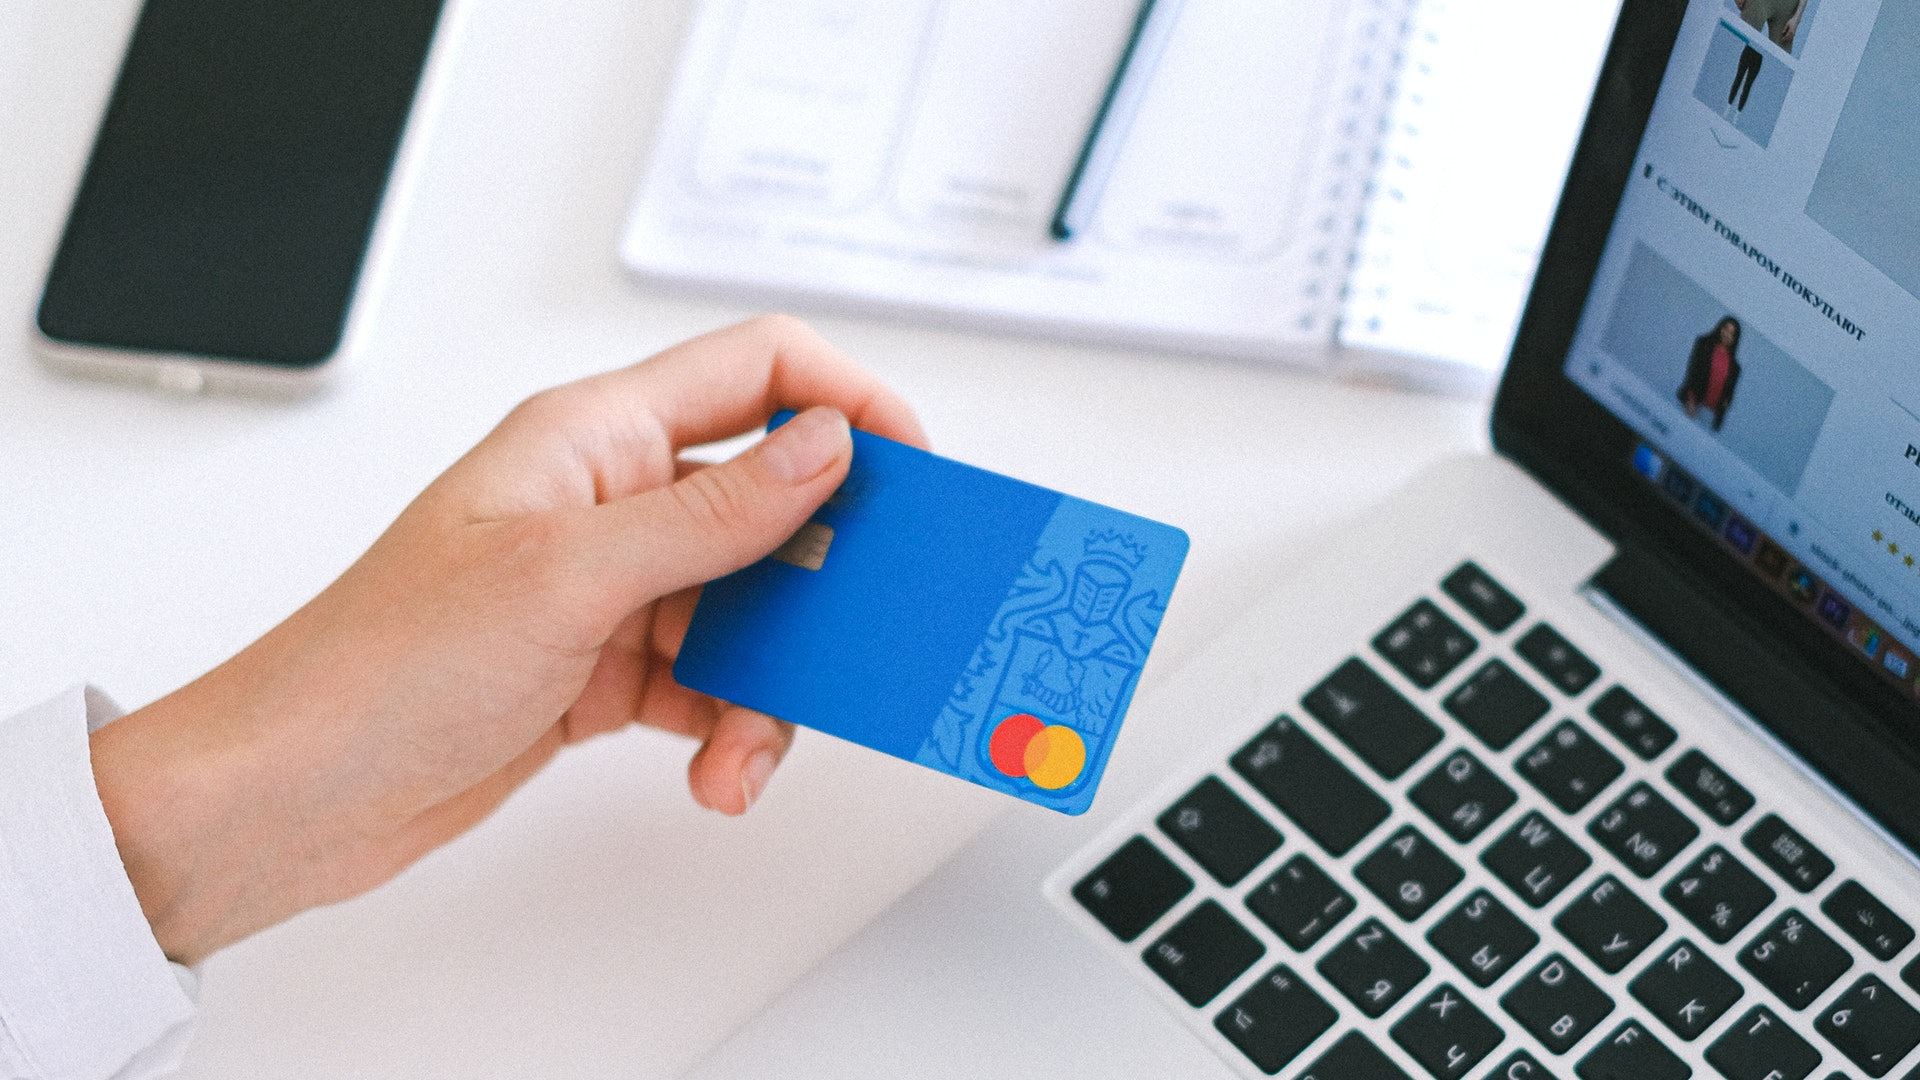 A woman is about to enter her Mastercard information in an online ecommerce POS. She is sitting at the computer holding her credit card in front of her.